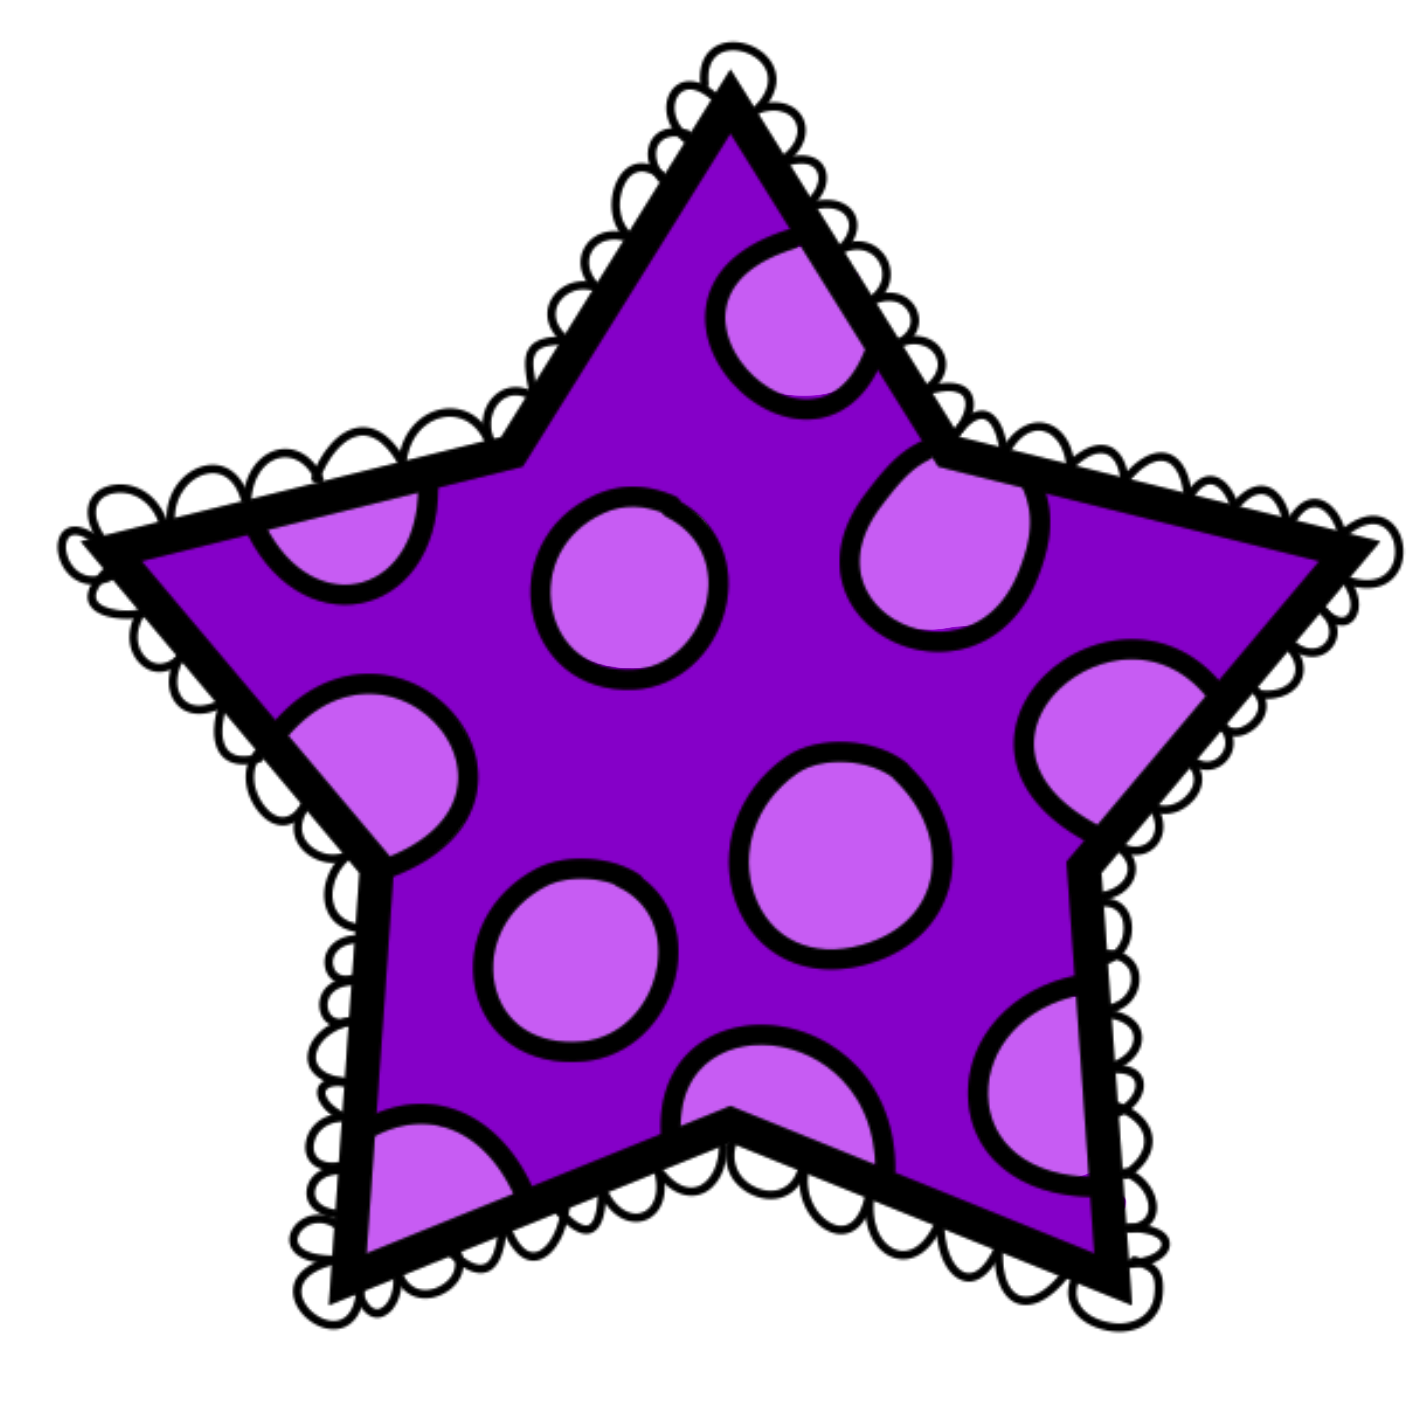 Polka dot star clipart jpg royalty free download Stars Clipart Polka Dot Free collection | Download and share Stars ... jpg royalty free download